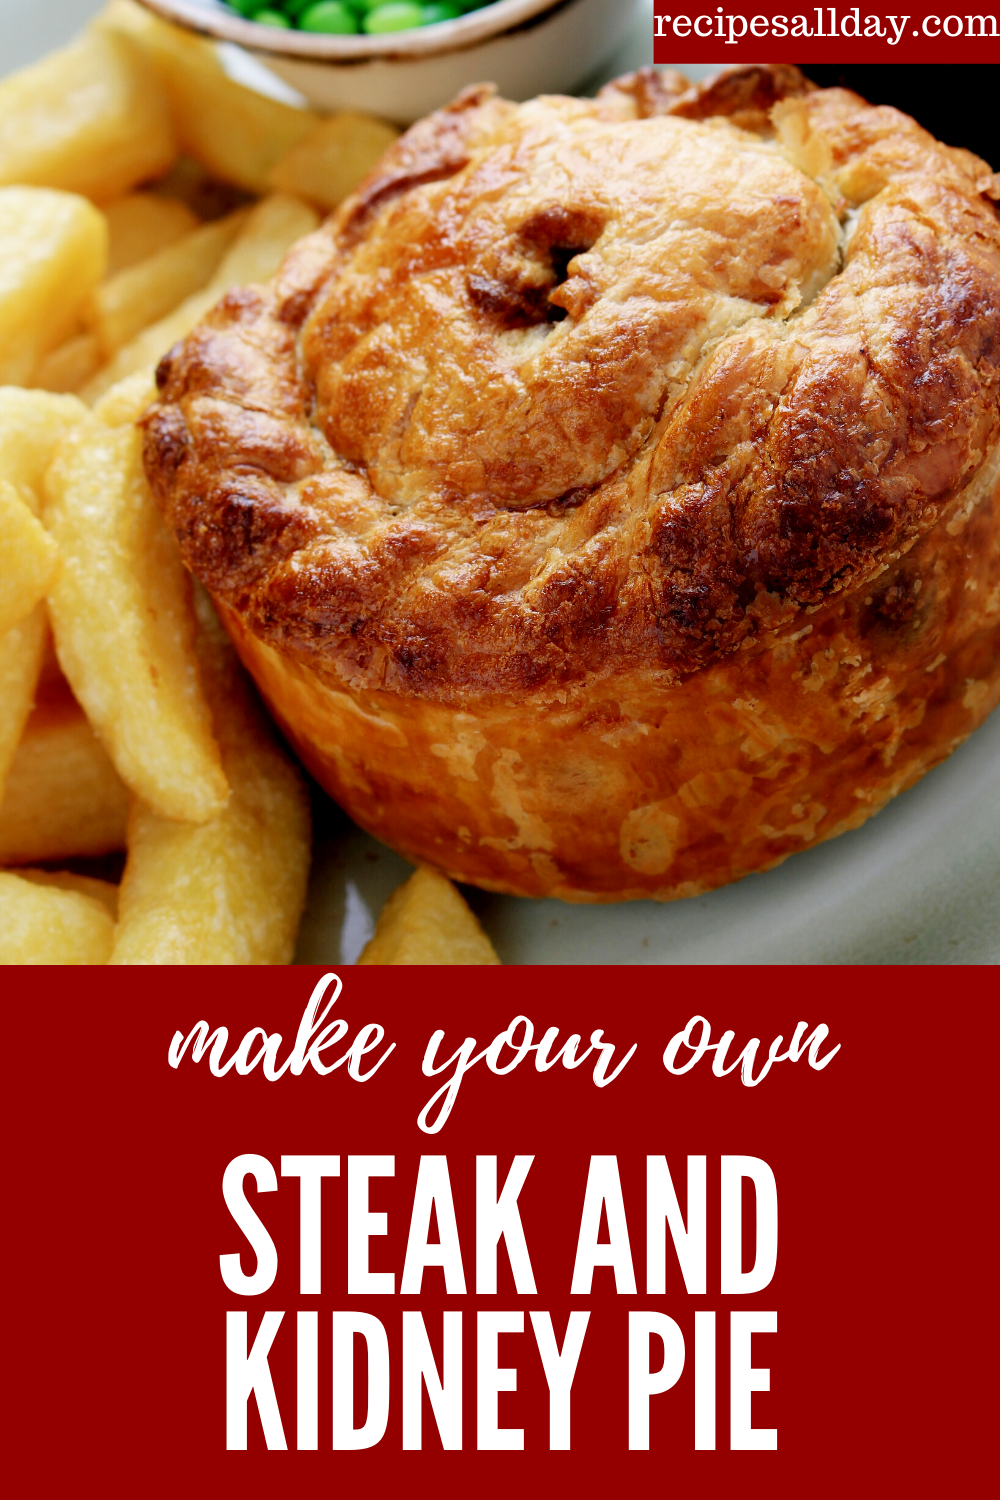 This steak and kidney pie recipe makes a delicious dinner ...